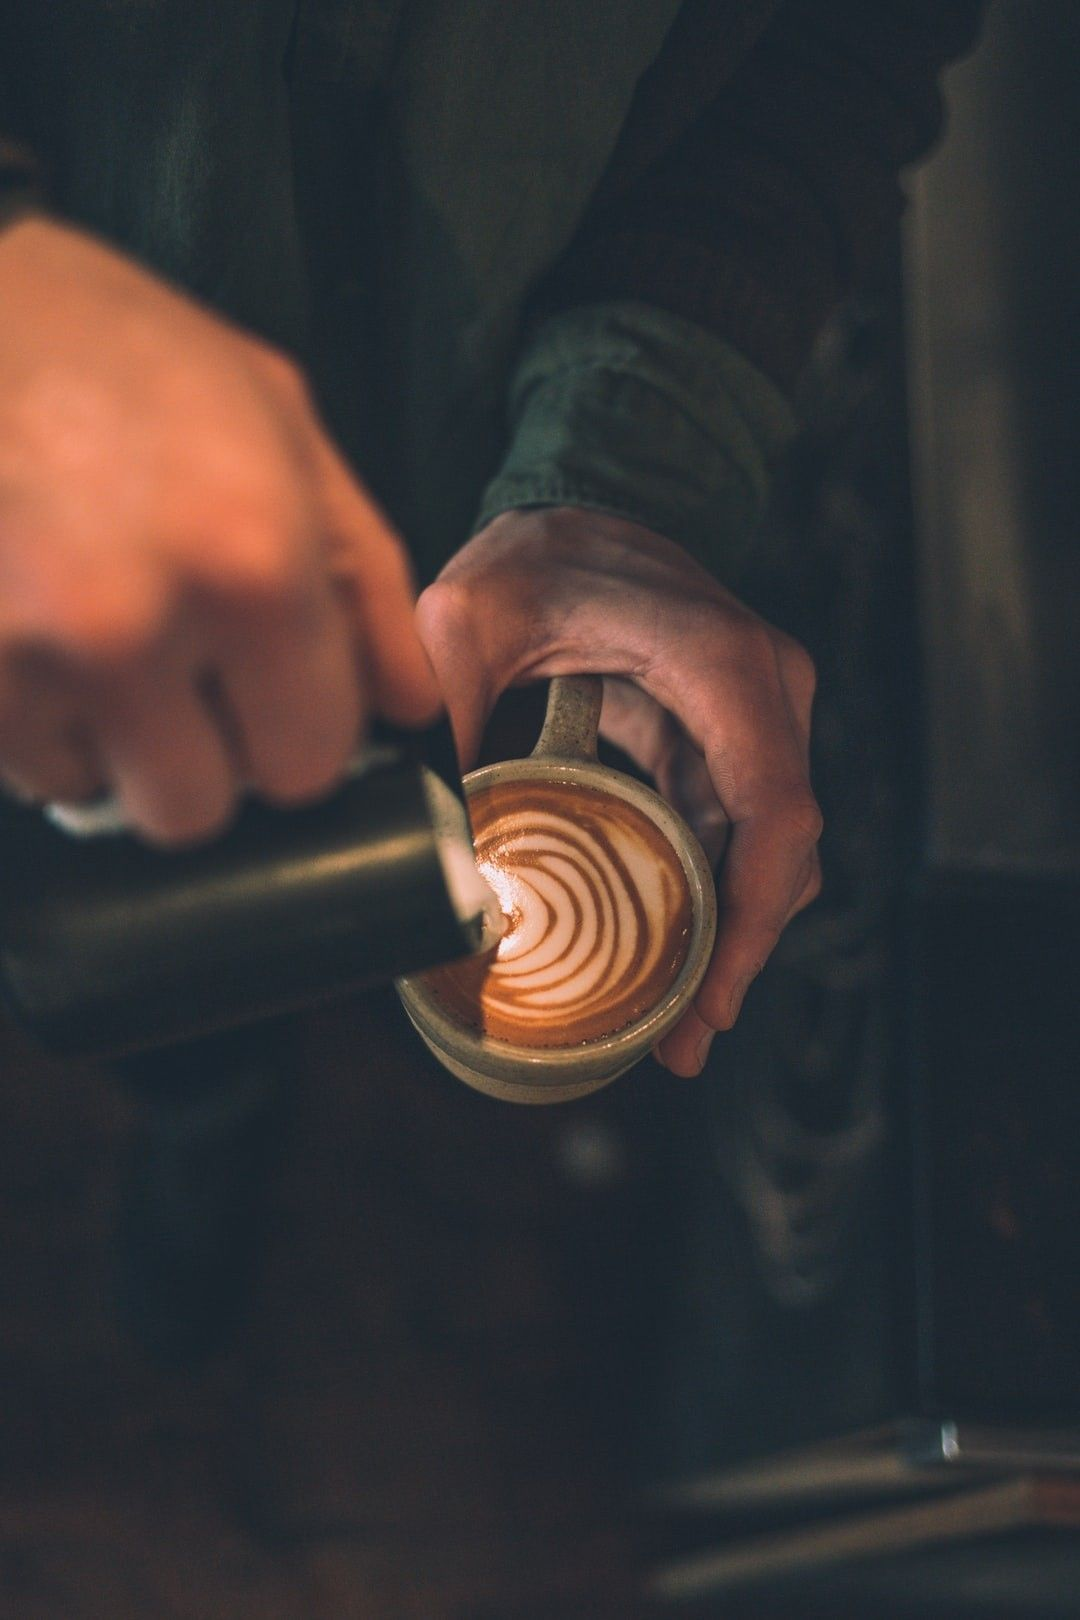 Man Pouring Latte Art To Cup Filled With Coffee Hd Wallpaper